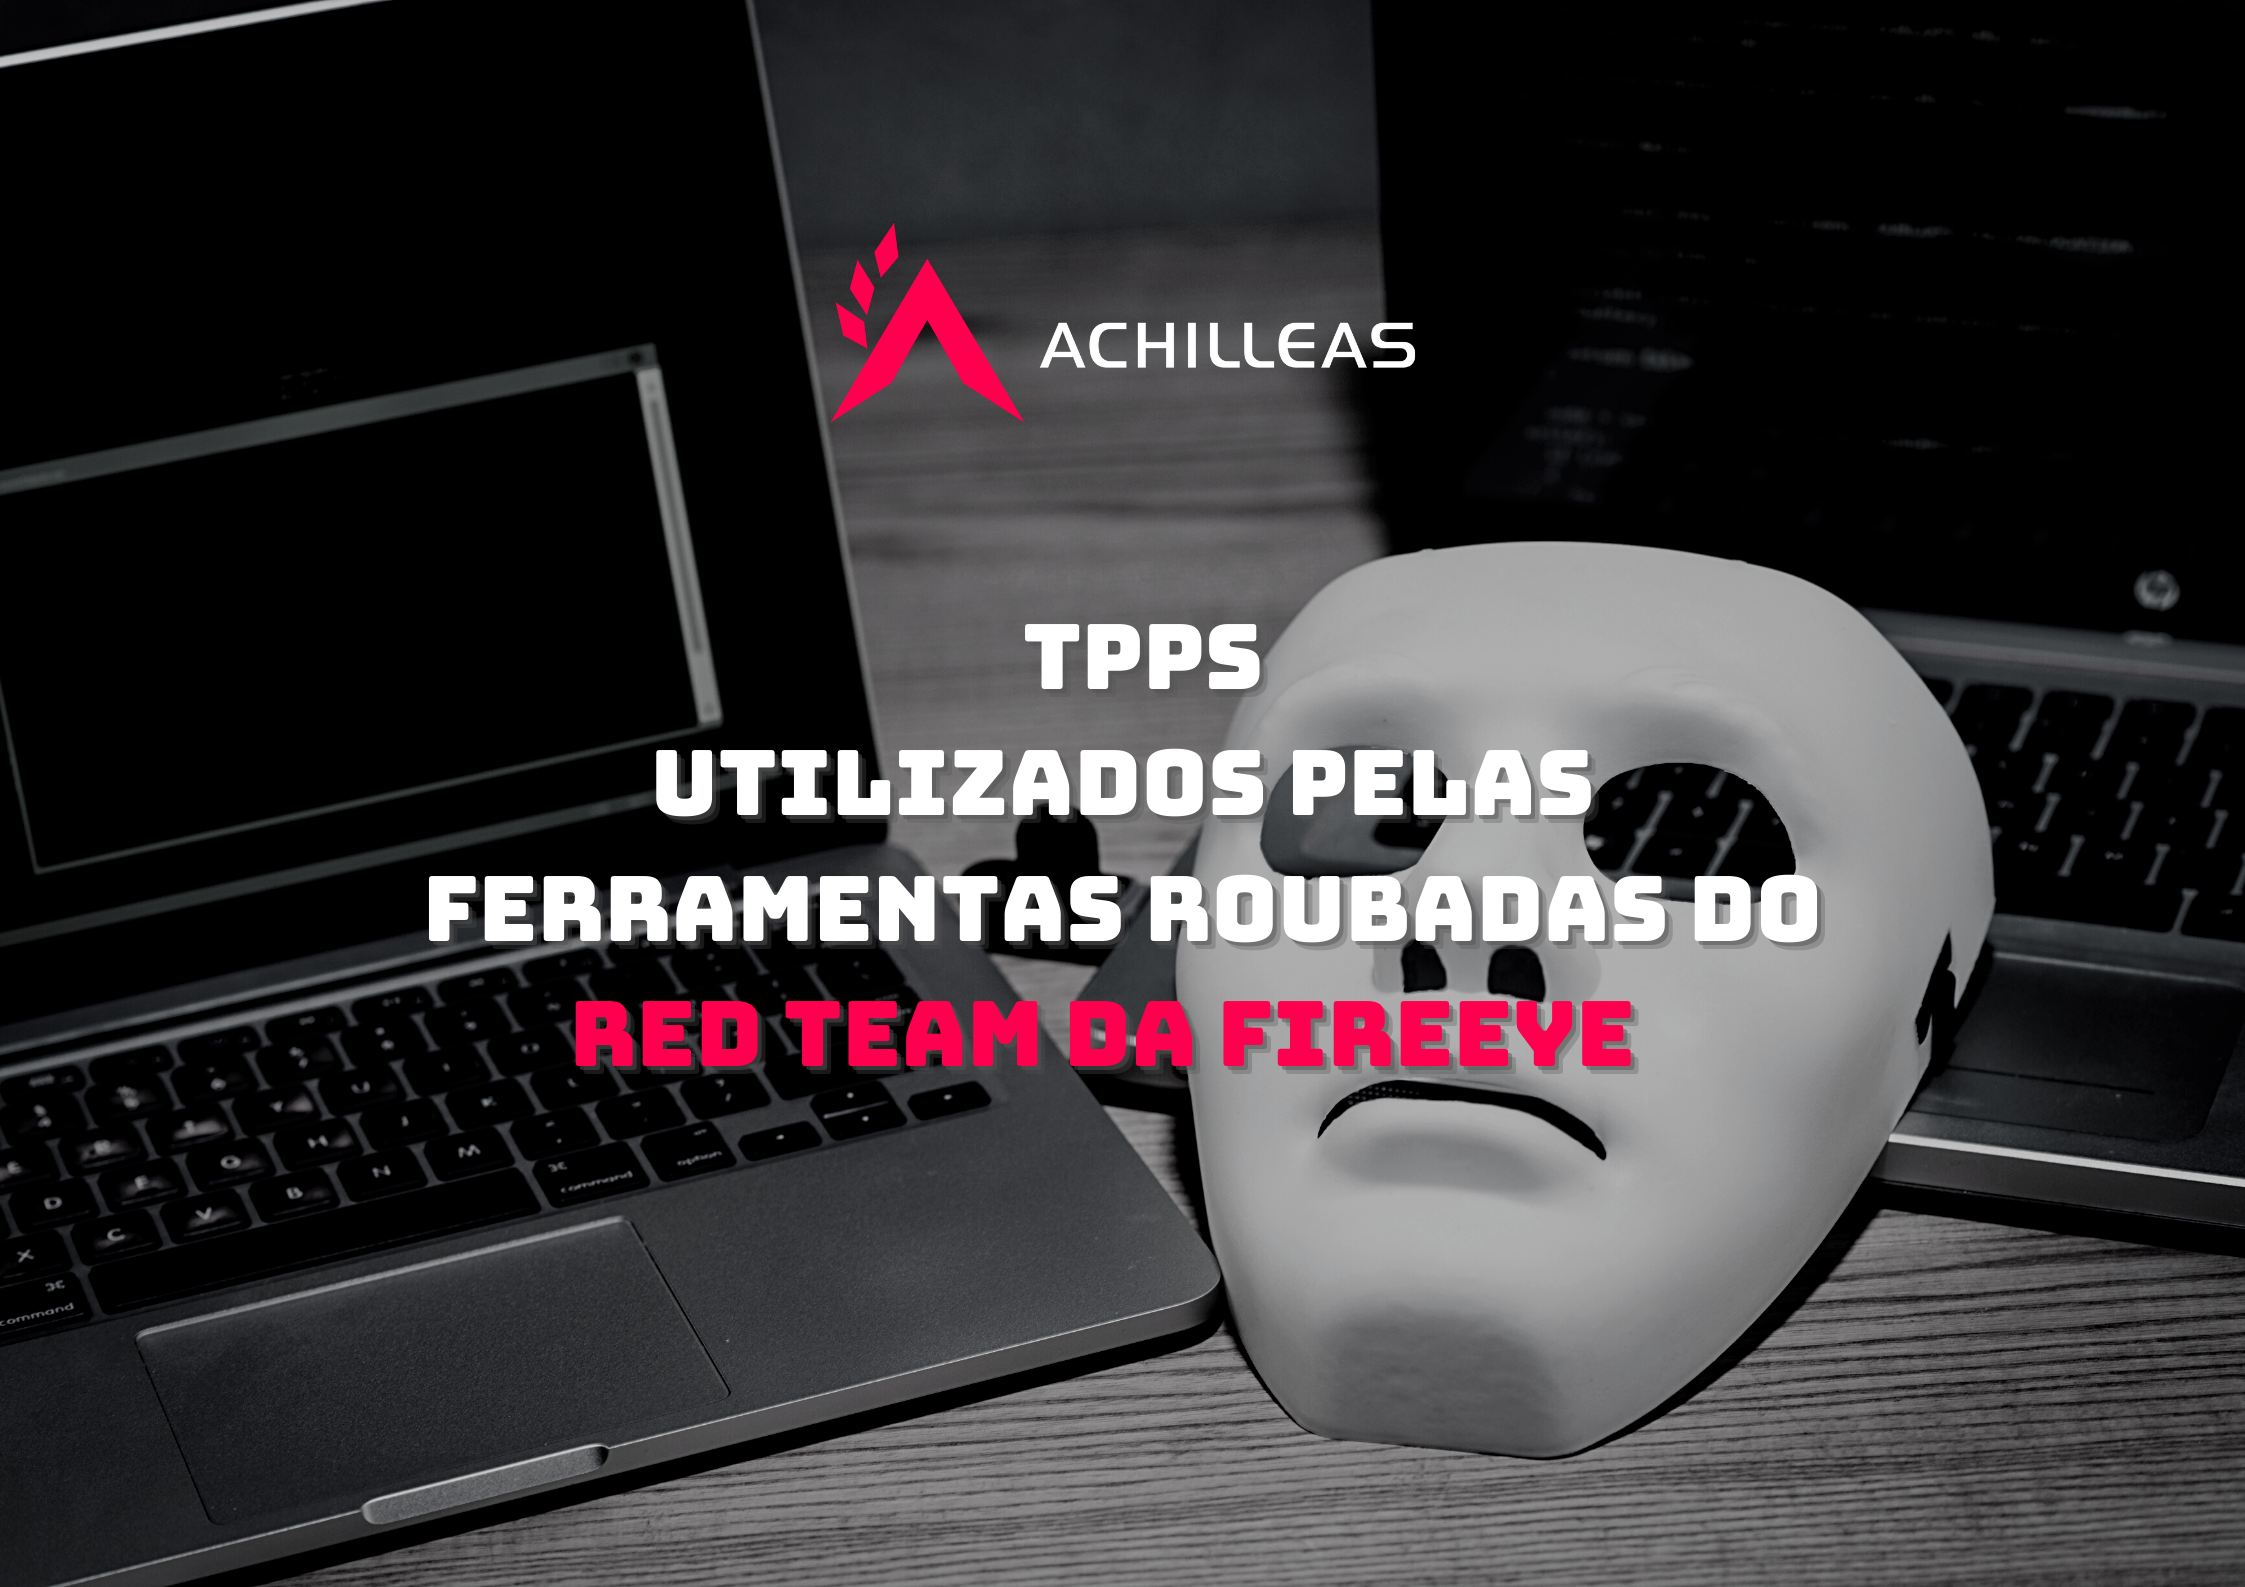 TPPs (Tactics, Techniques and Procedures) utilizados pelas ferramentas roubadas do Red Team da FireEye